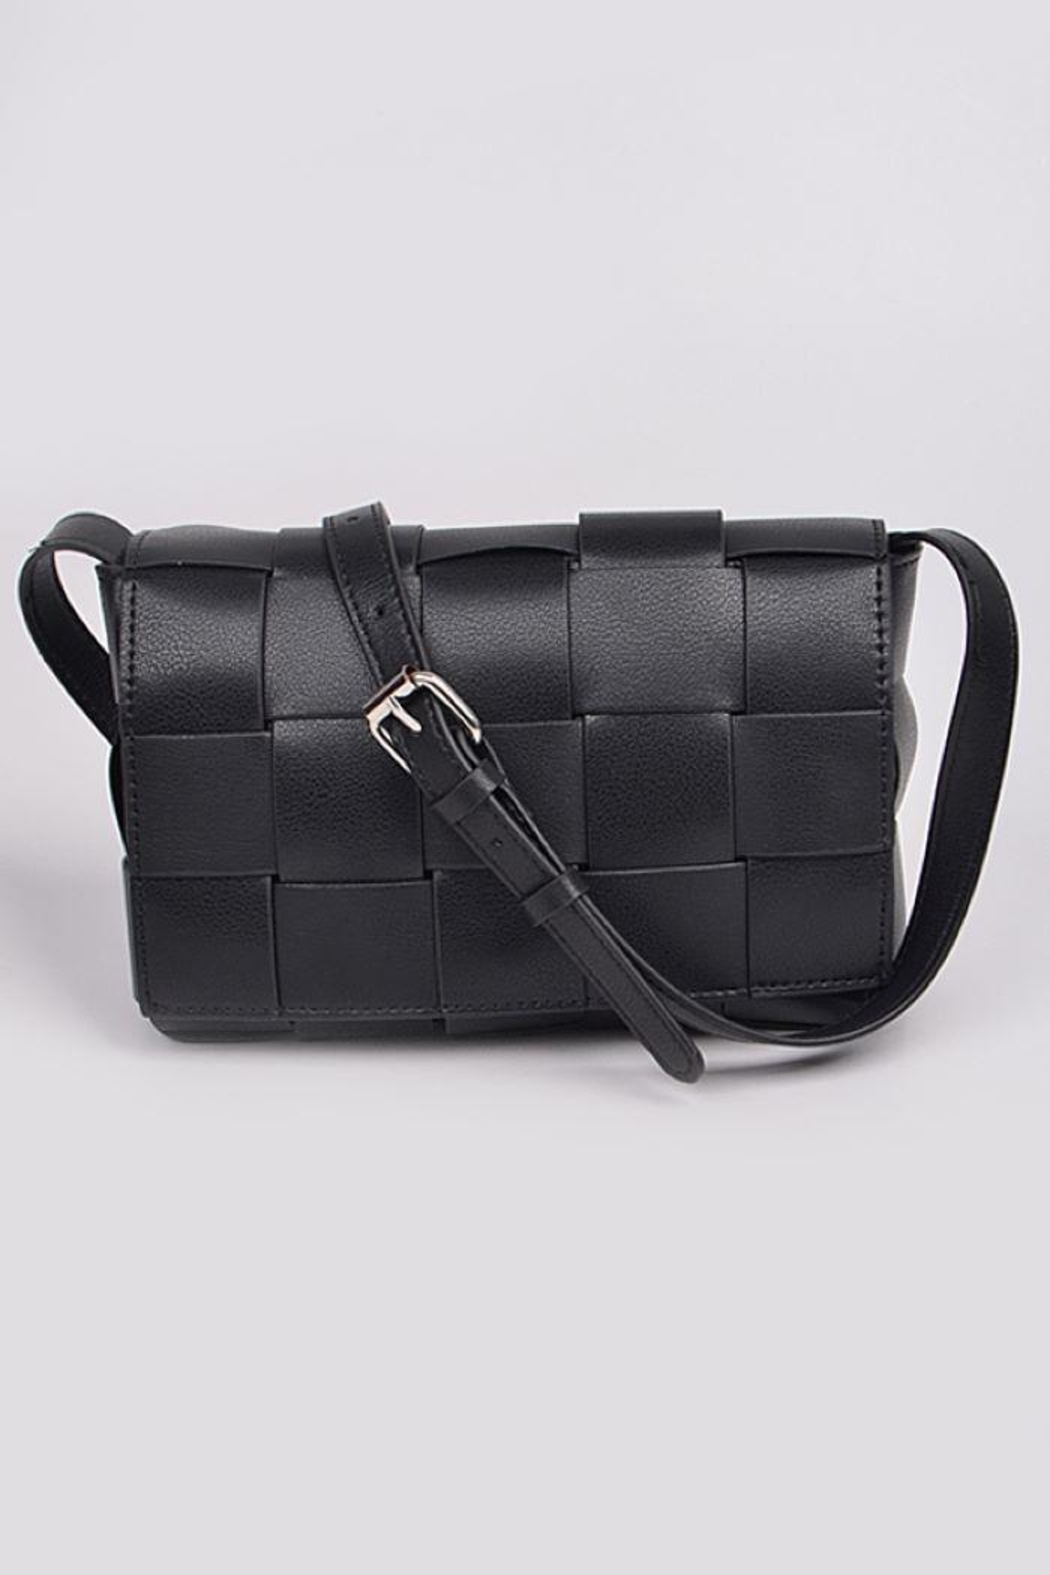 H&D Accessories Monotone Weaving Leather Clutch - Main Image